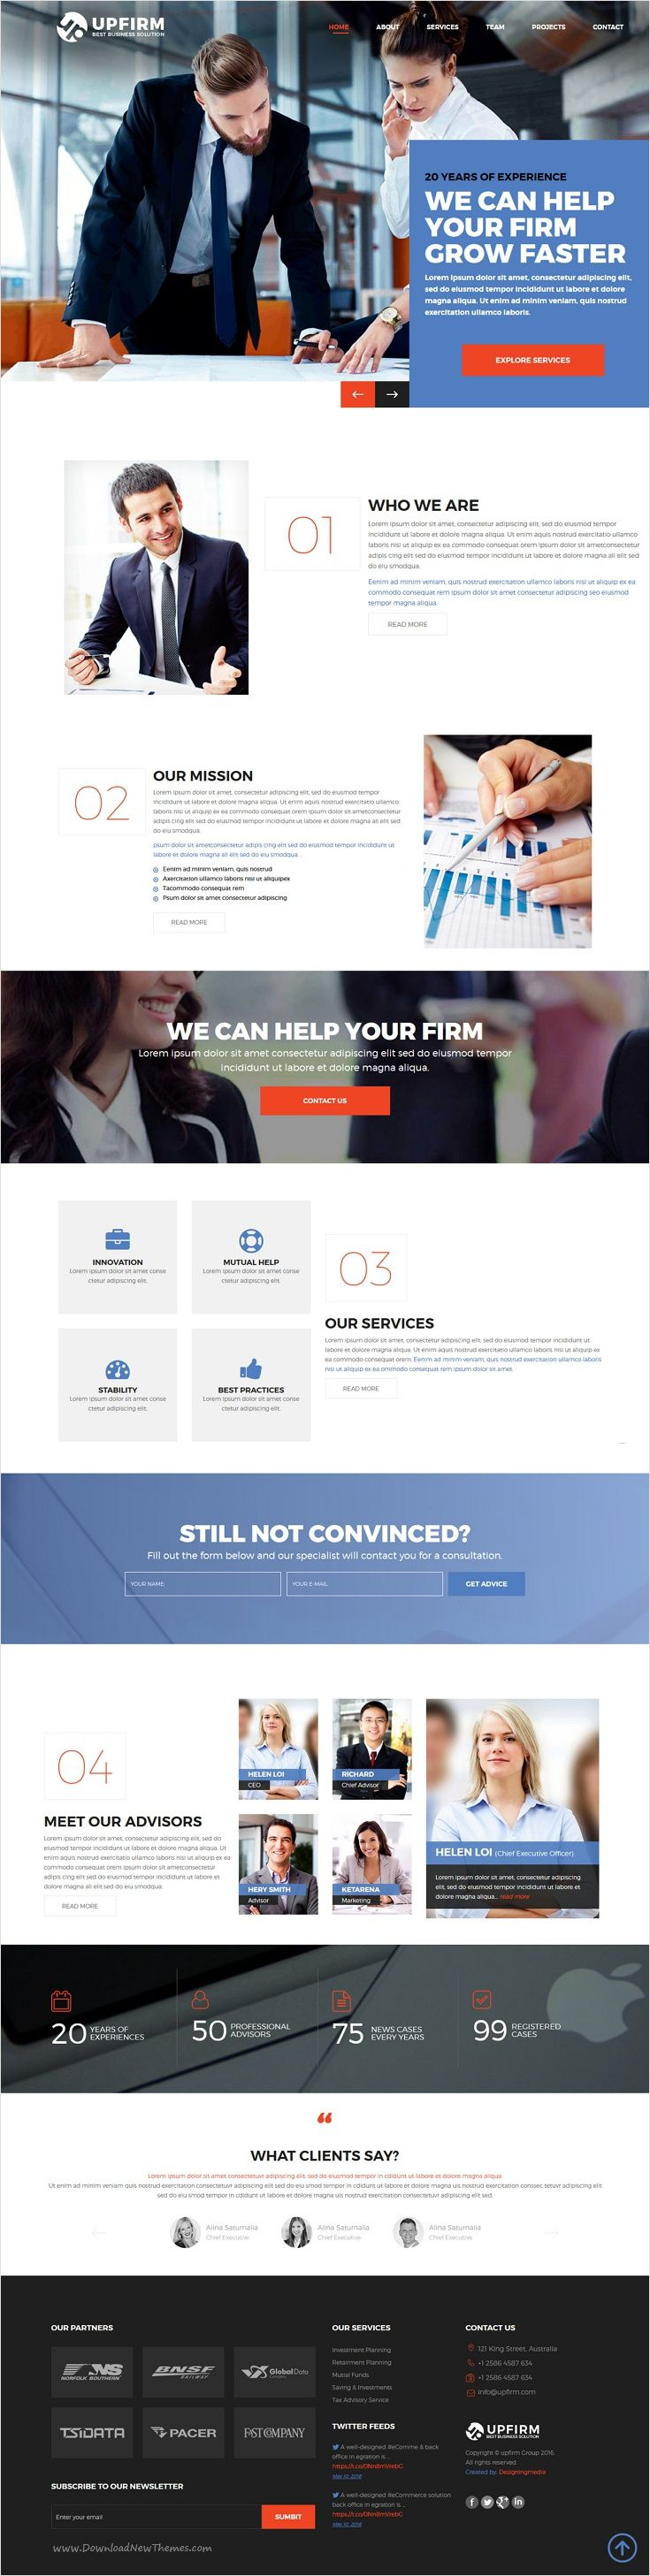 Upfirm is beautifully design premium #Bootstrap HTML5 theme for #advisor, attorney, business or #corporate consulting agencies website Download now➩ https://themeforest.net/item/upfirm-multi-purpose-html5-website-template/18261528?ref=Datasata